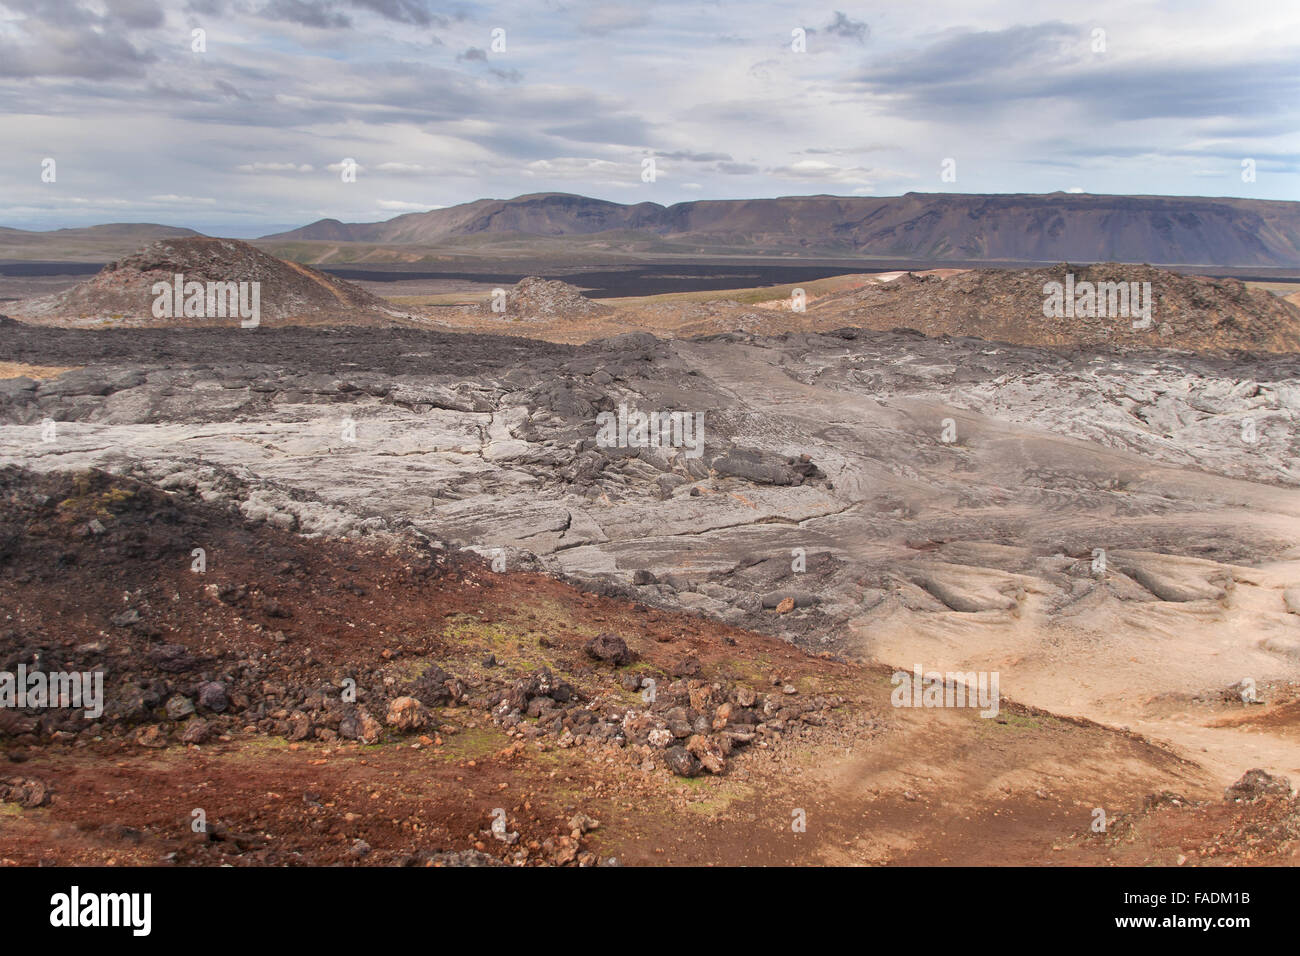 Lava field of the Krafla volcano in the north of Iceland. - Stock Image